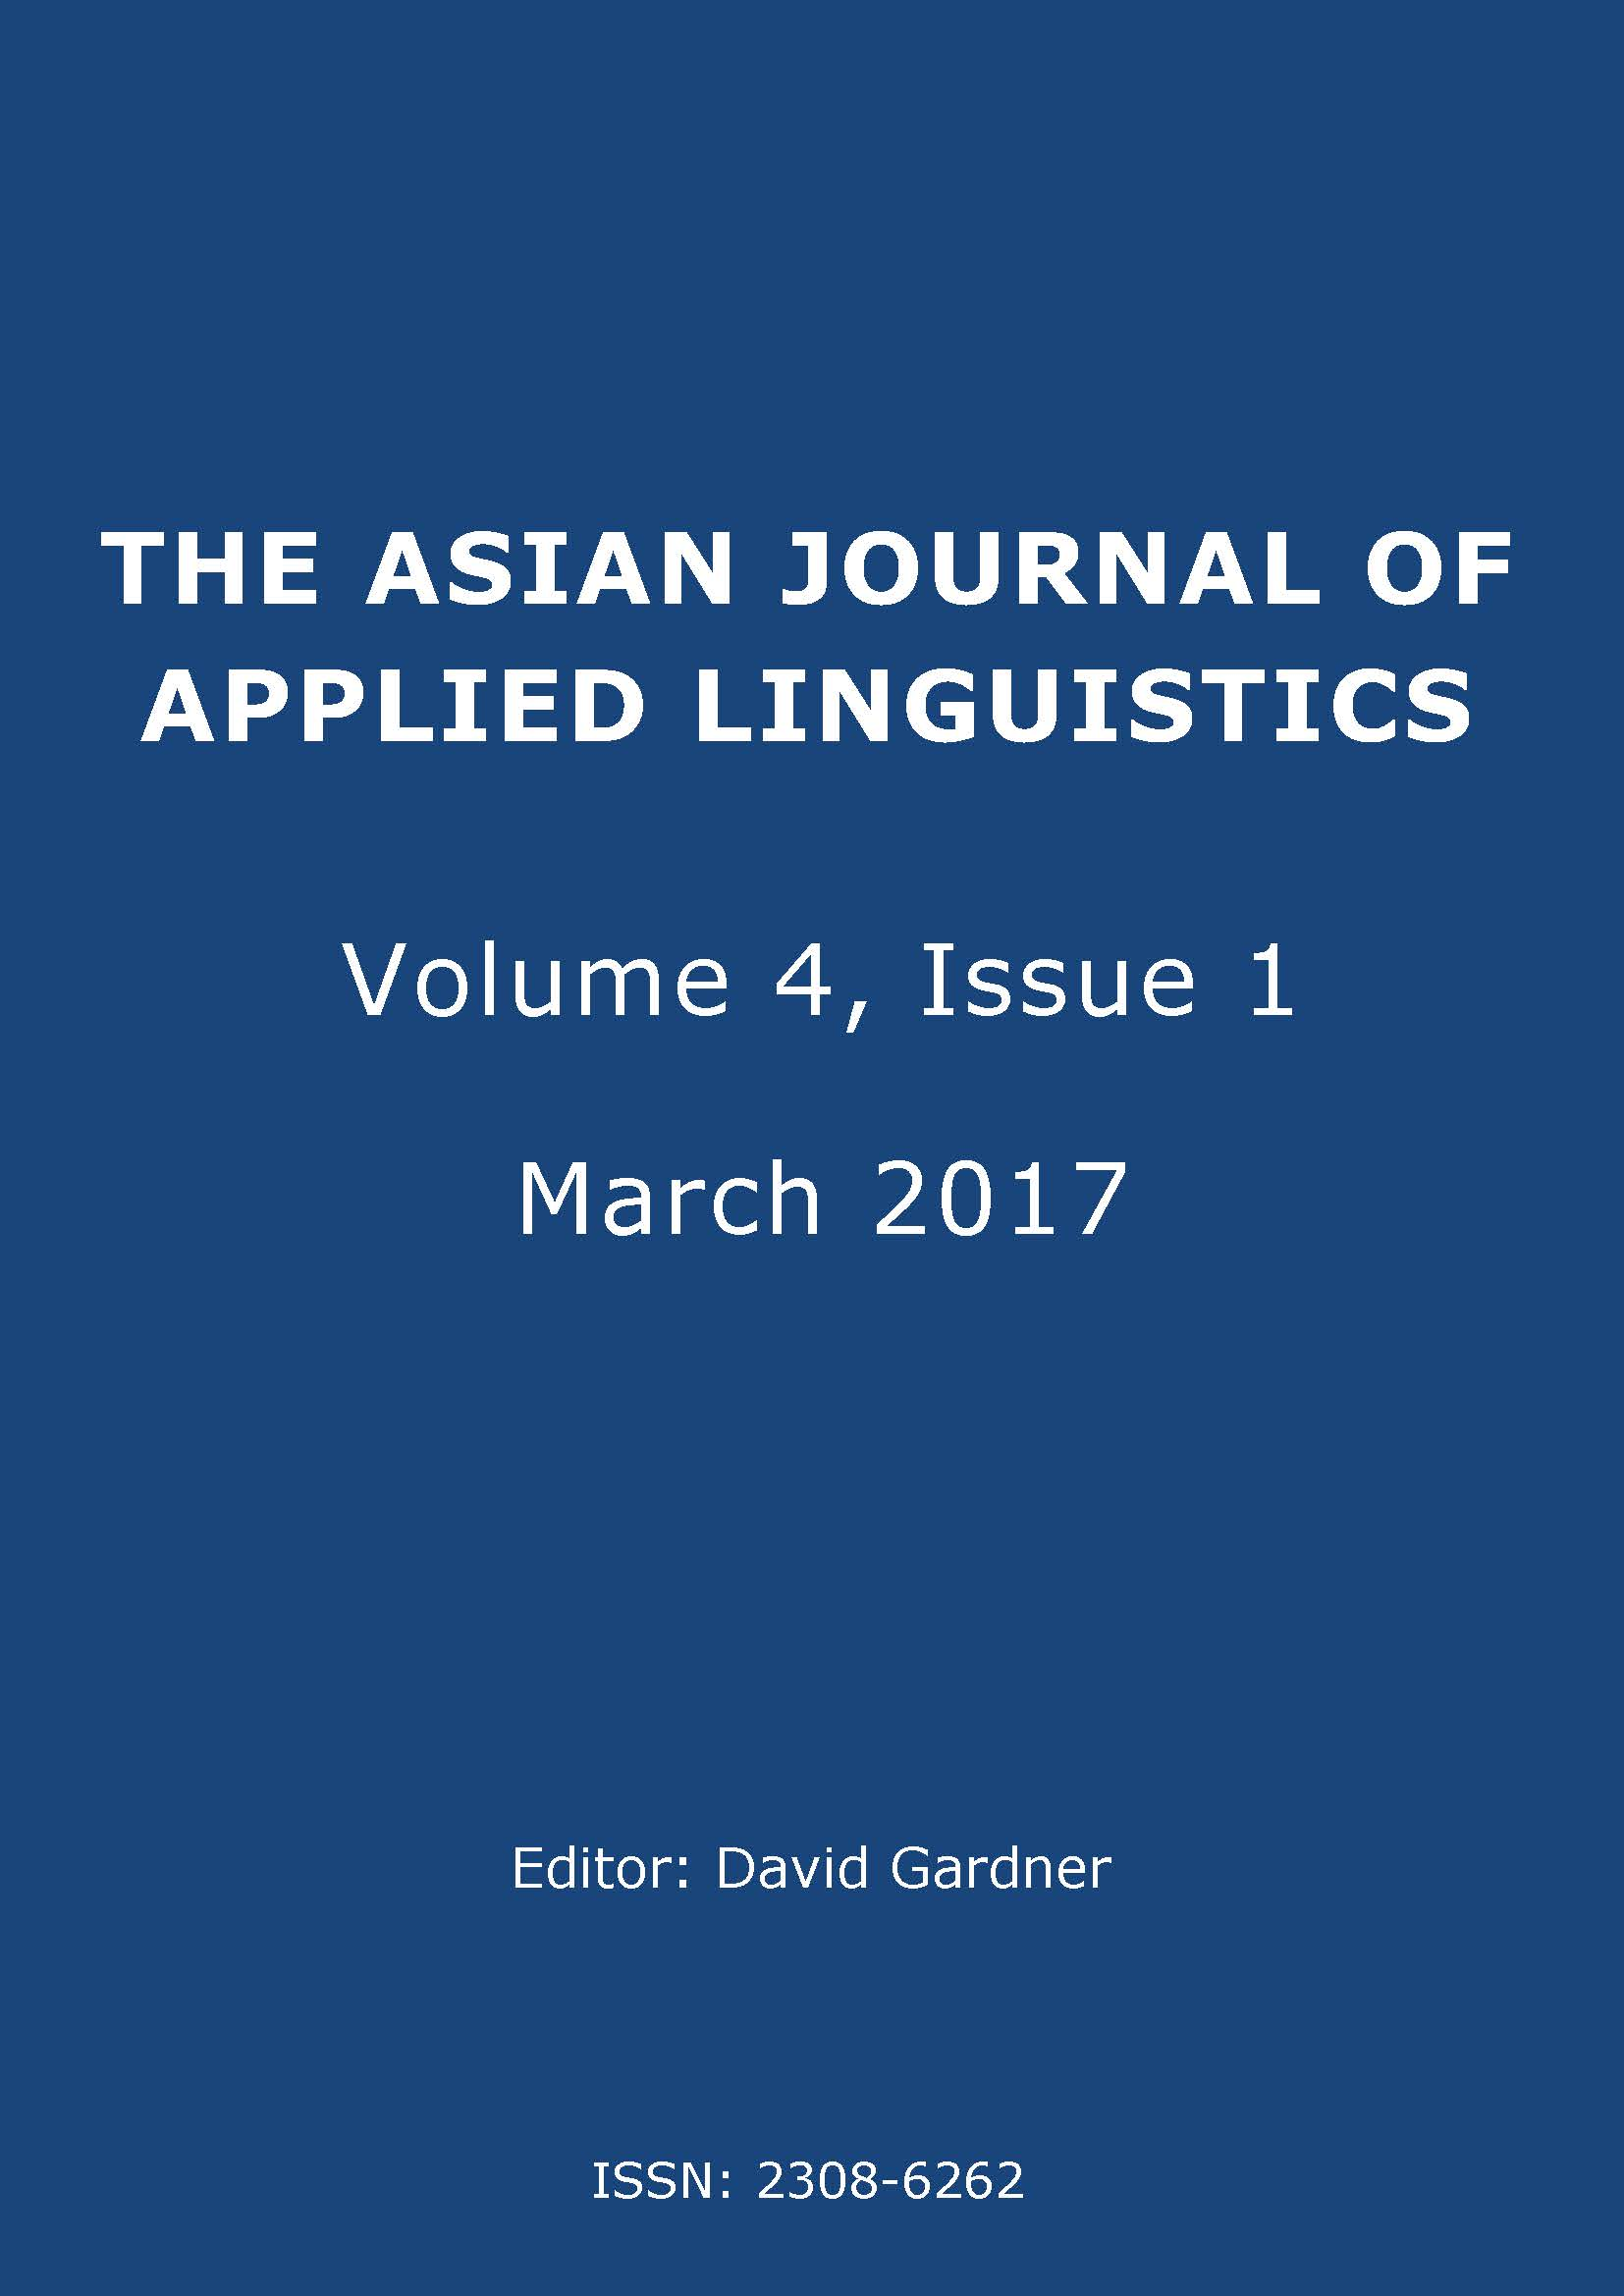 The Asian Journal of Applied Linguistics. Volume 4. Issue 1. March 2017